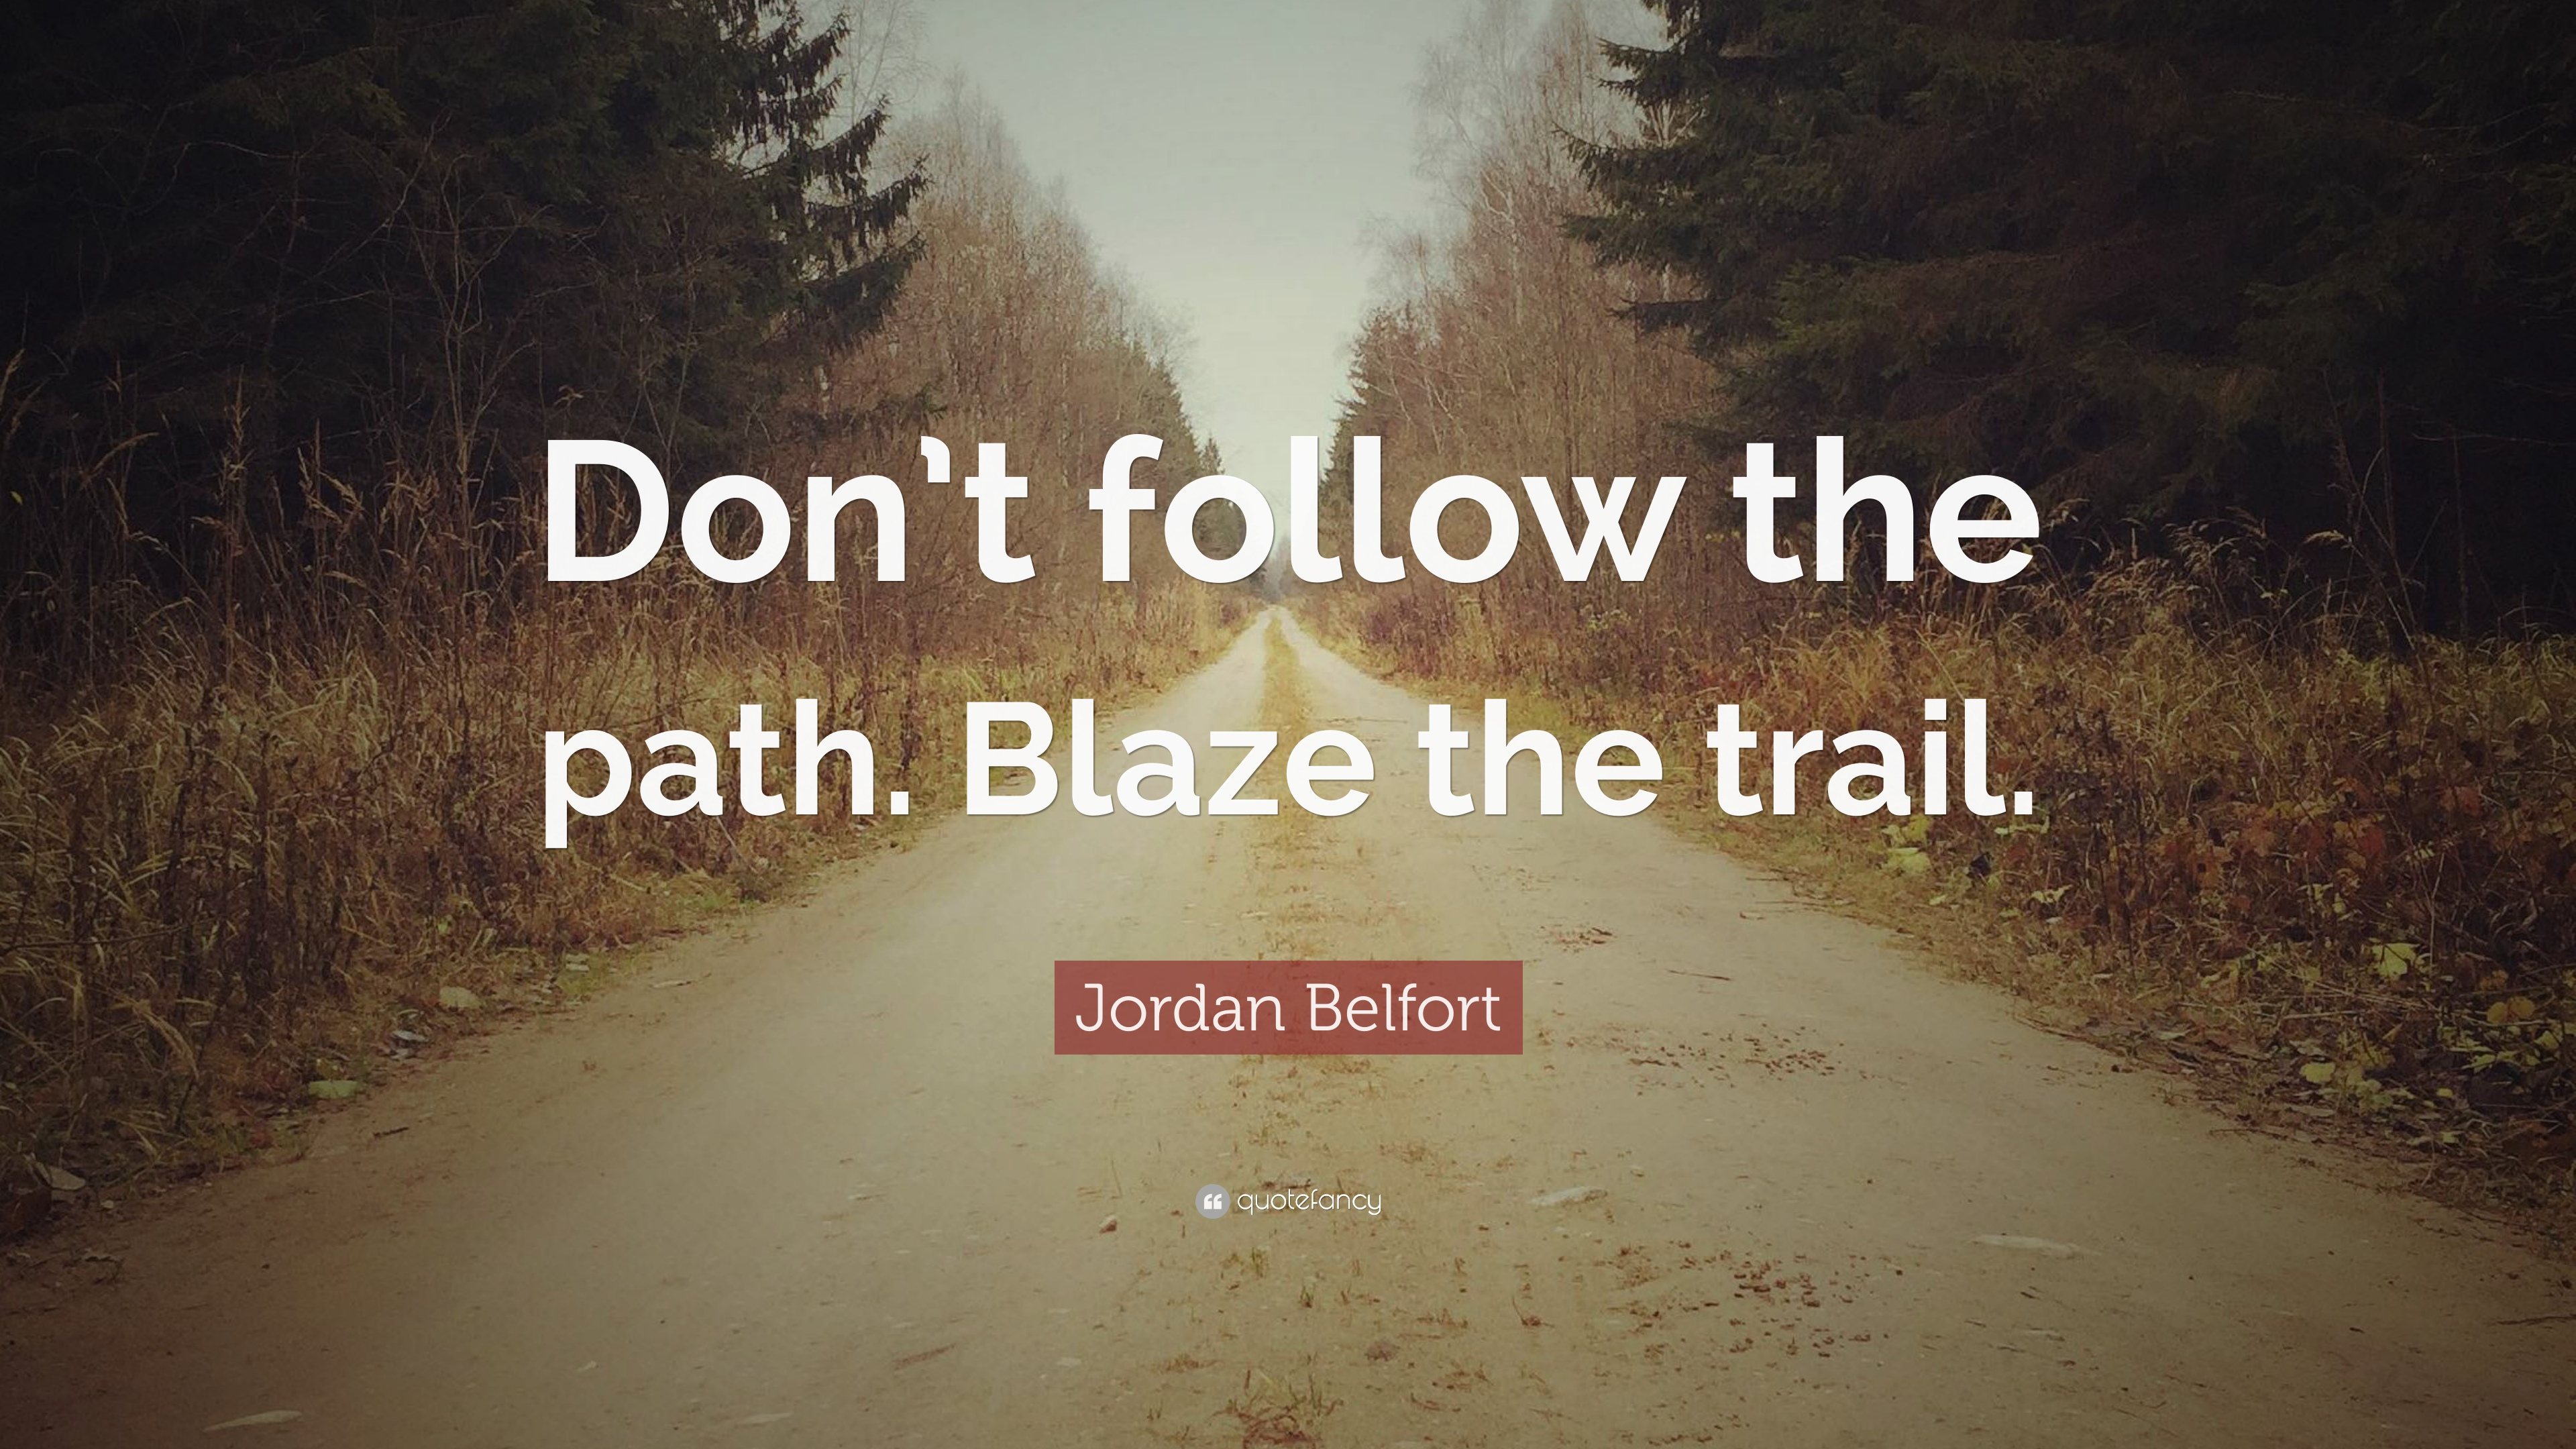 Jordan belfort quote dont follow the path blaze the trail